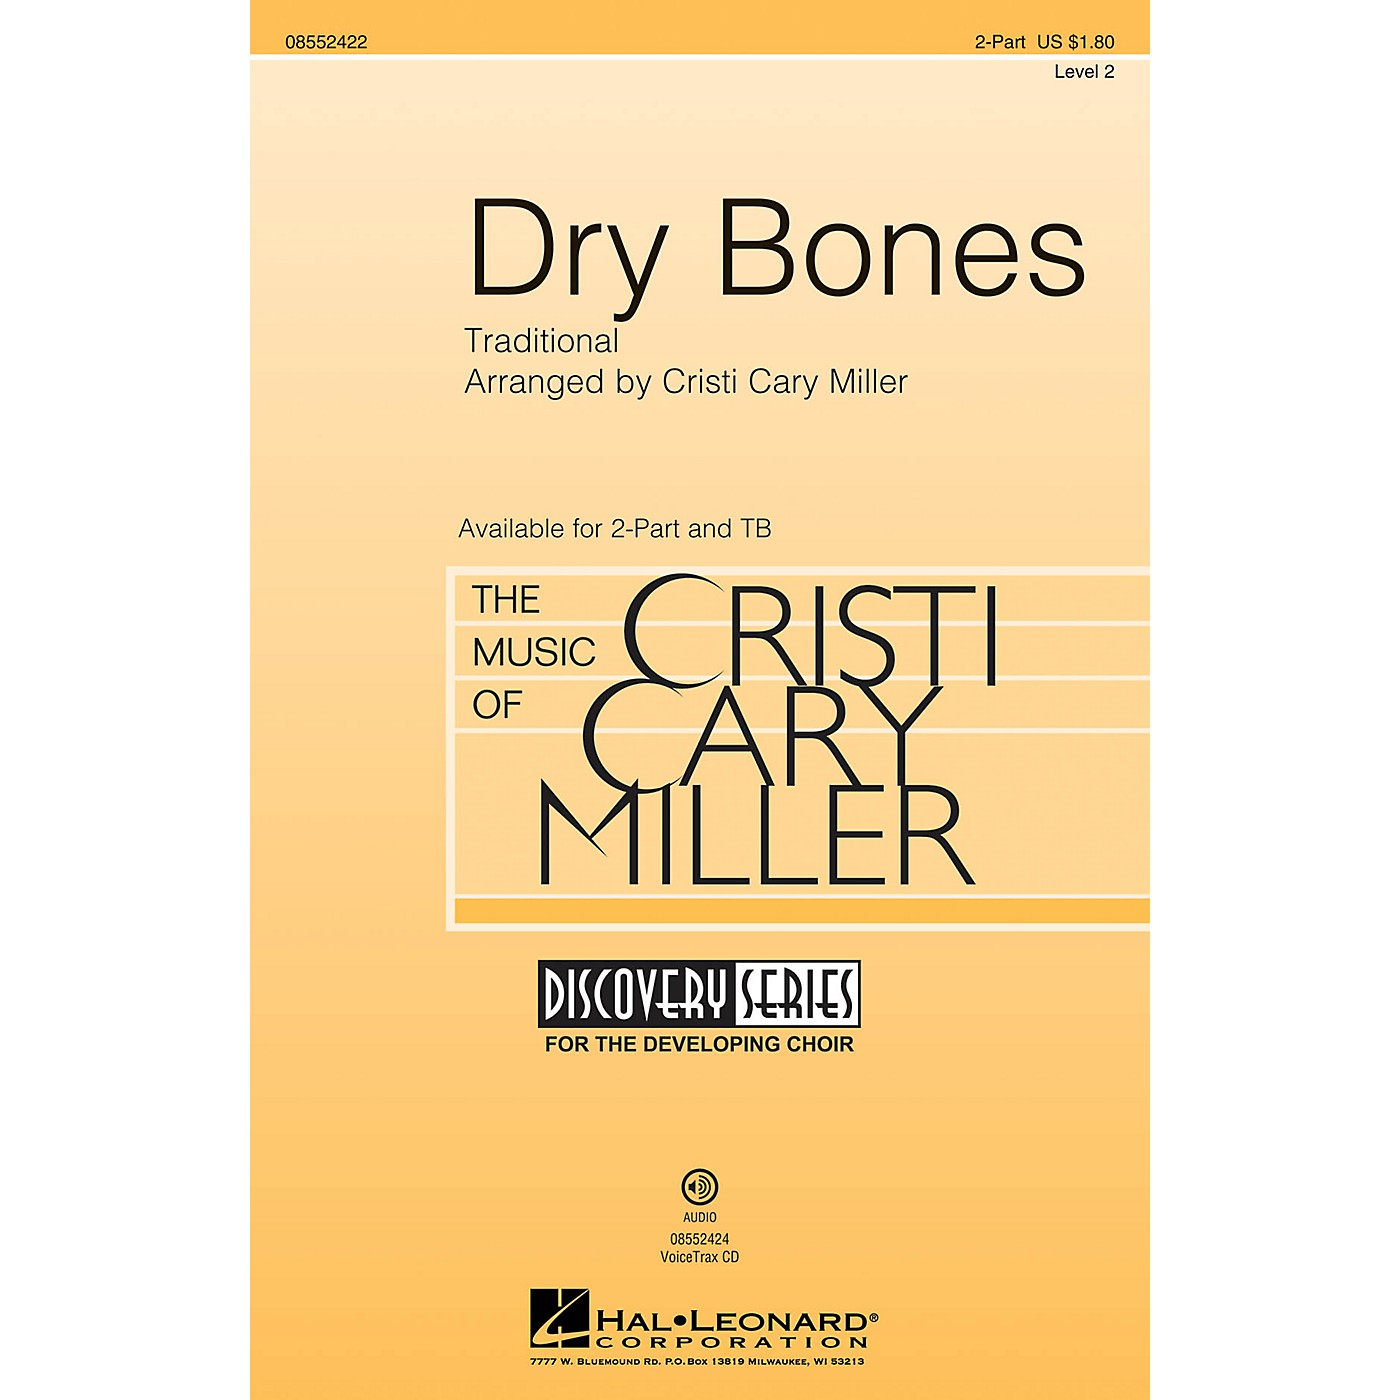 Hal Leonard Dry Bones (Discovery Level 2) TB Arranged by Cristi Cary Miller thumbnail